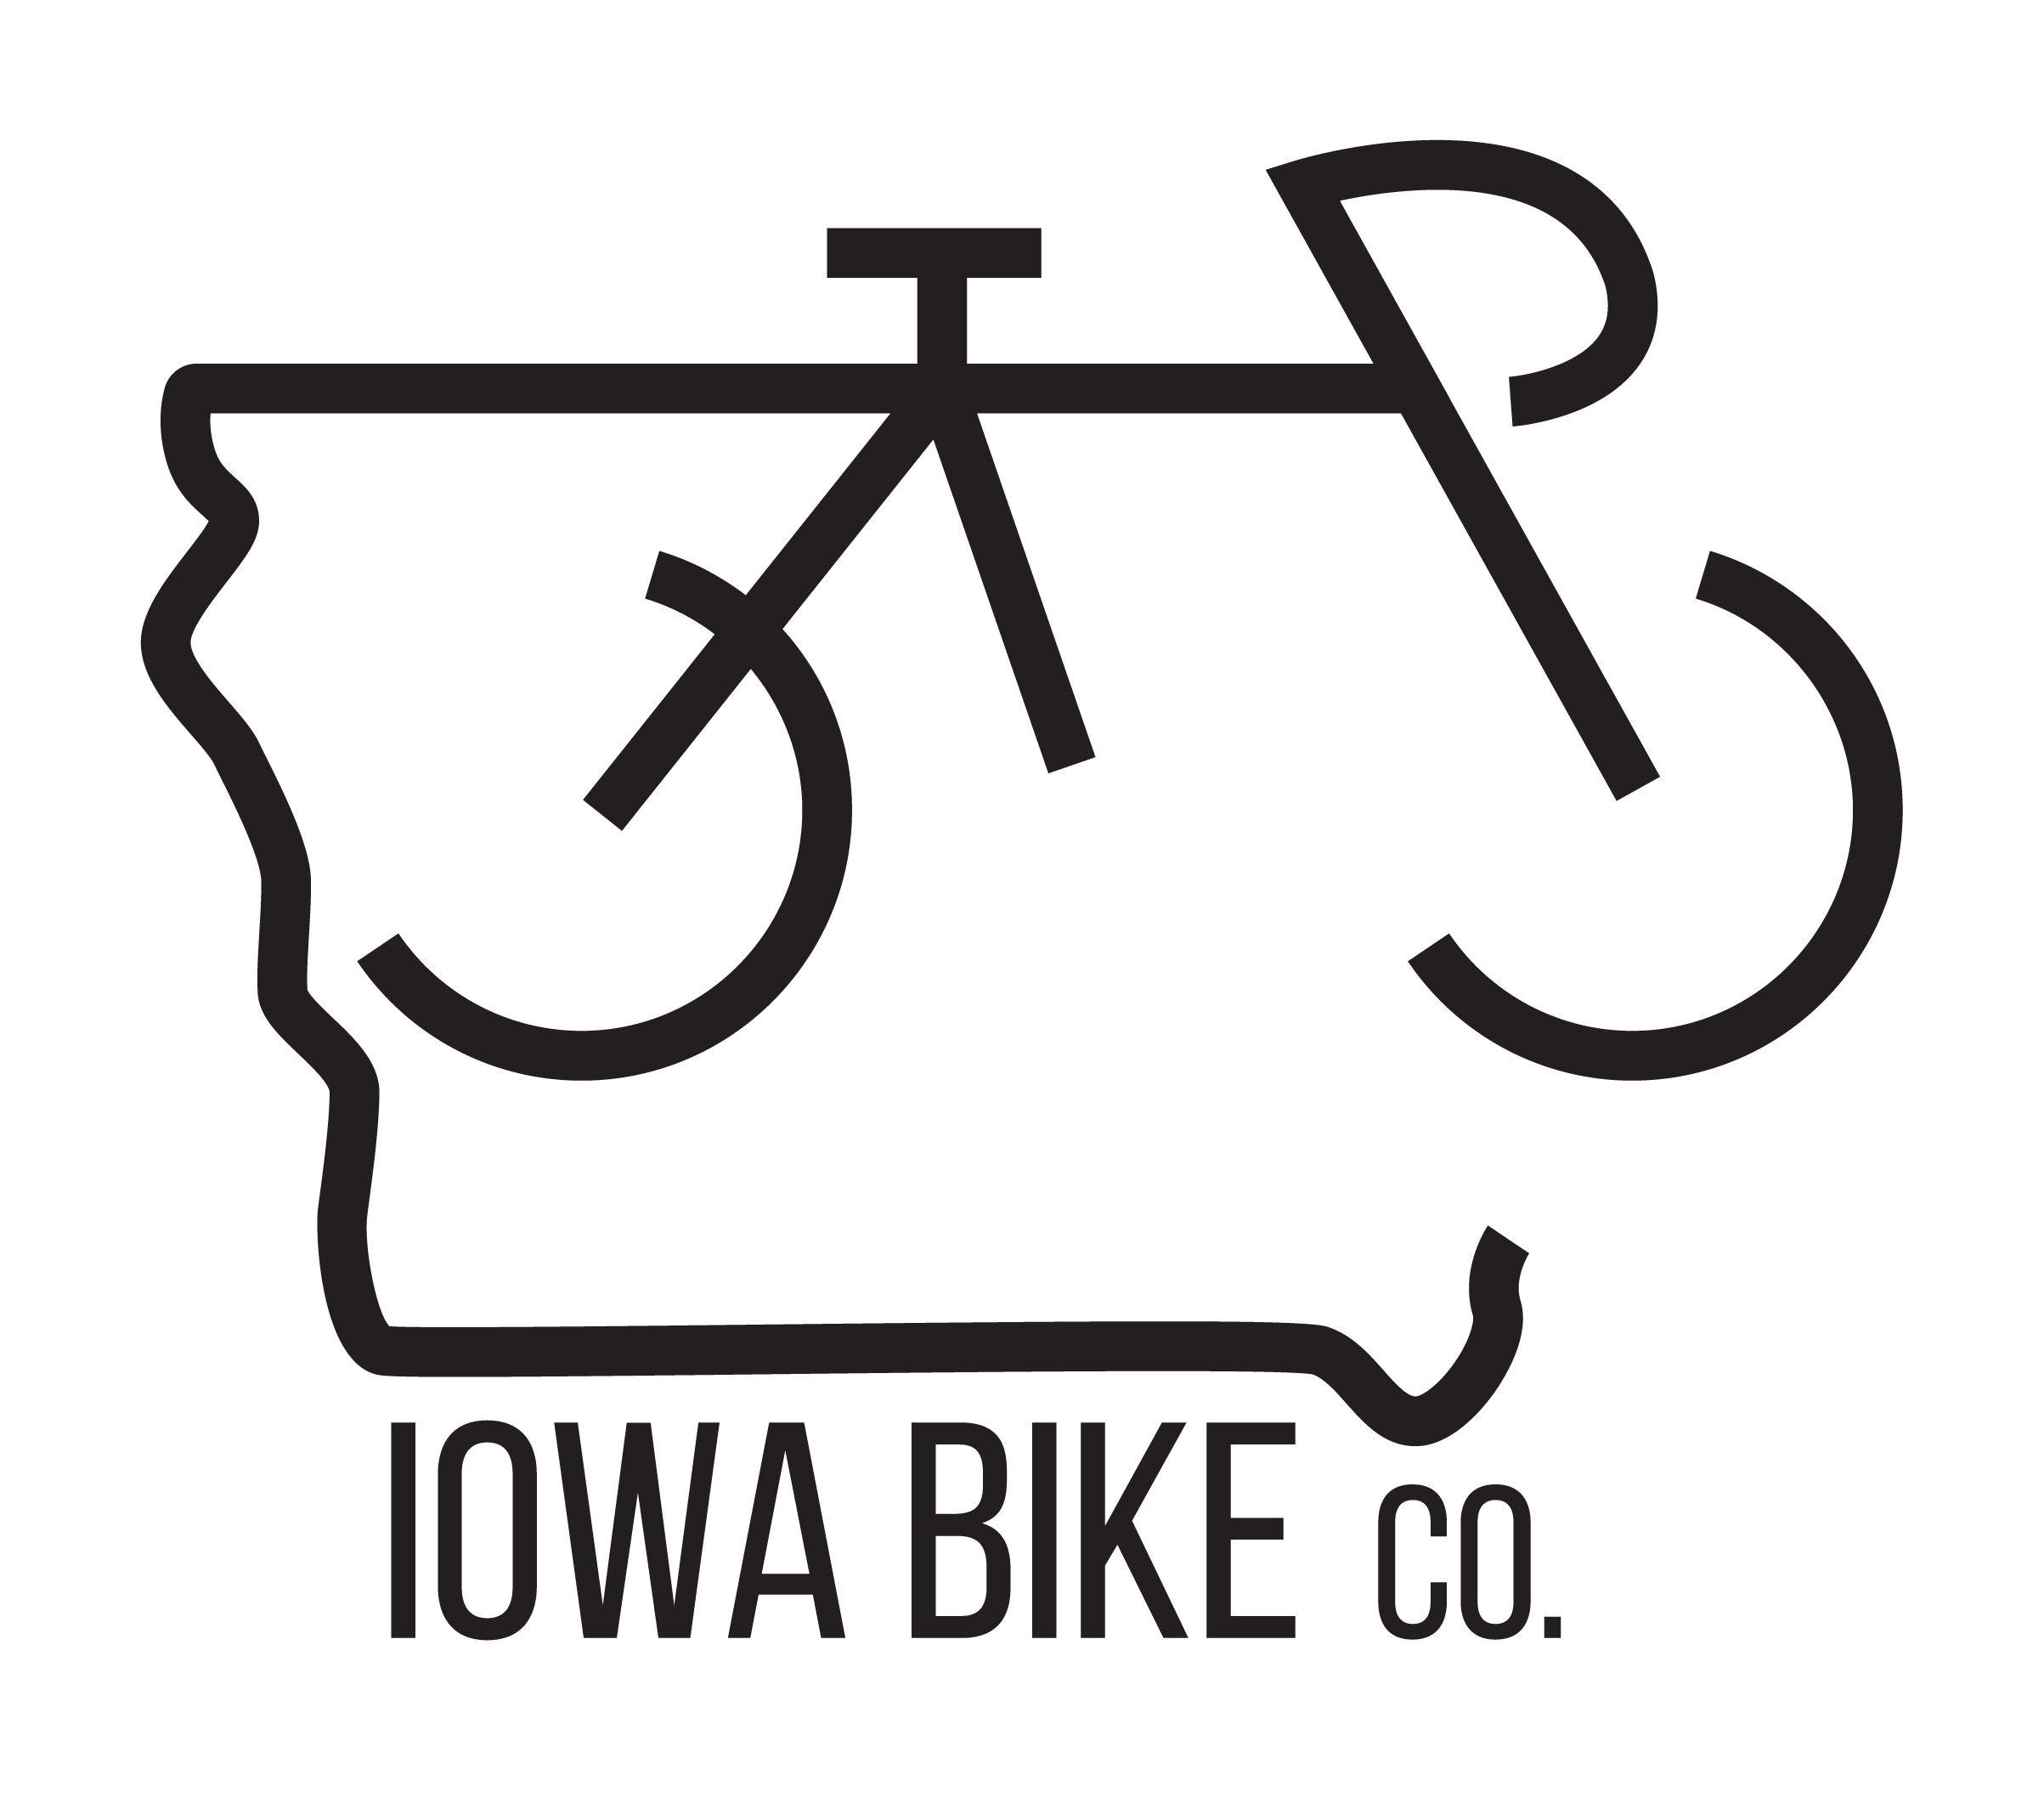 Iowa Bike Home Page